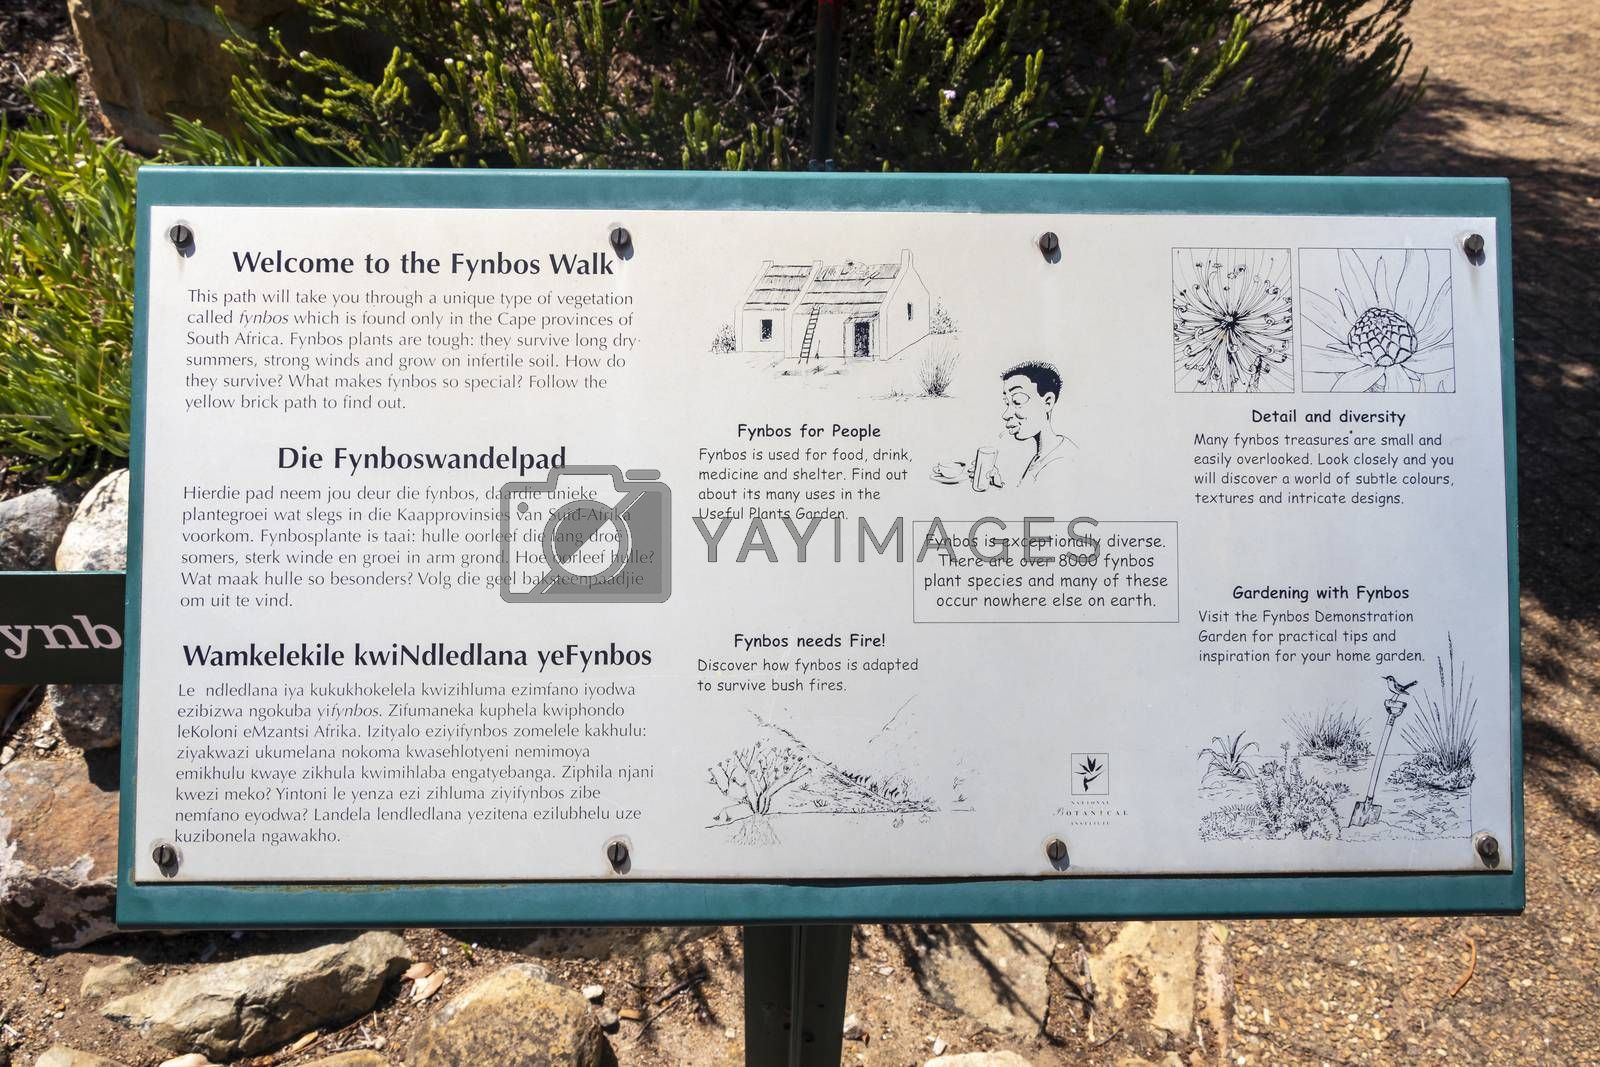 Fynbos Walk green turquoise information sign in Kirstenbosch, Cape Town, South Africa.